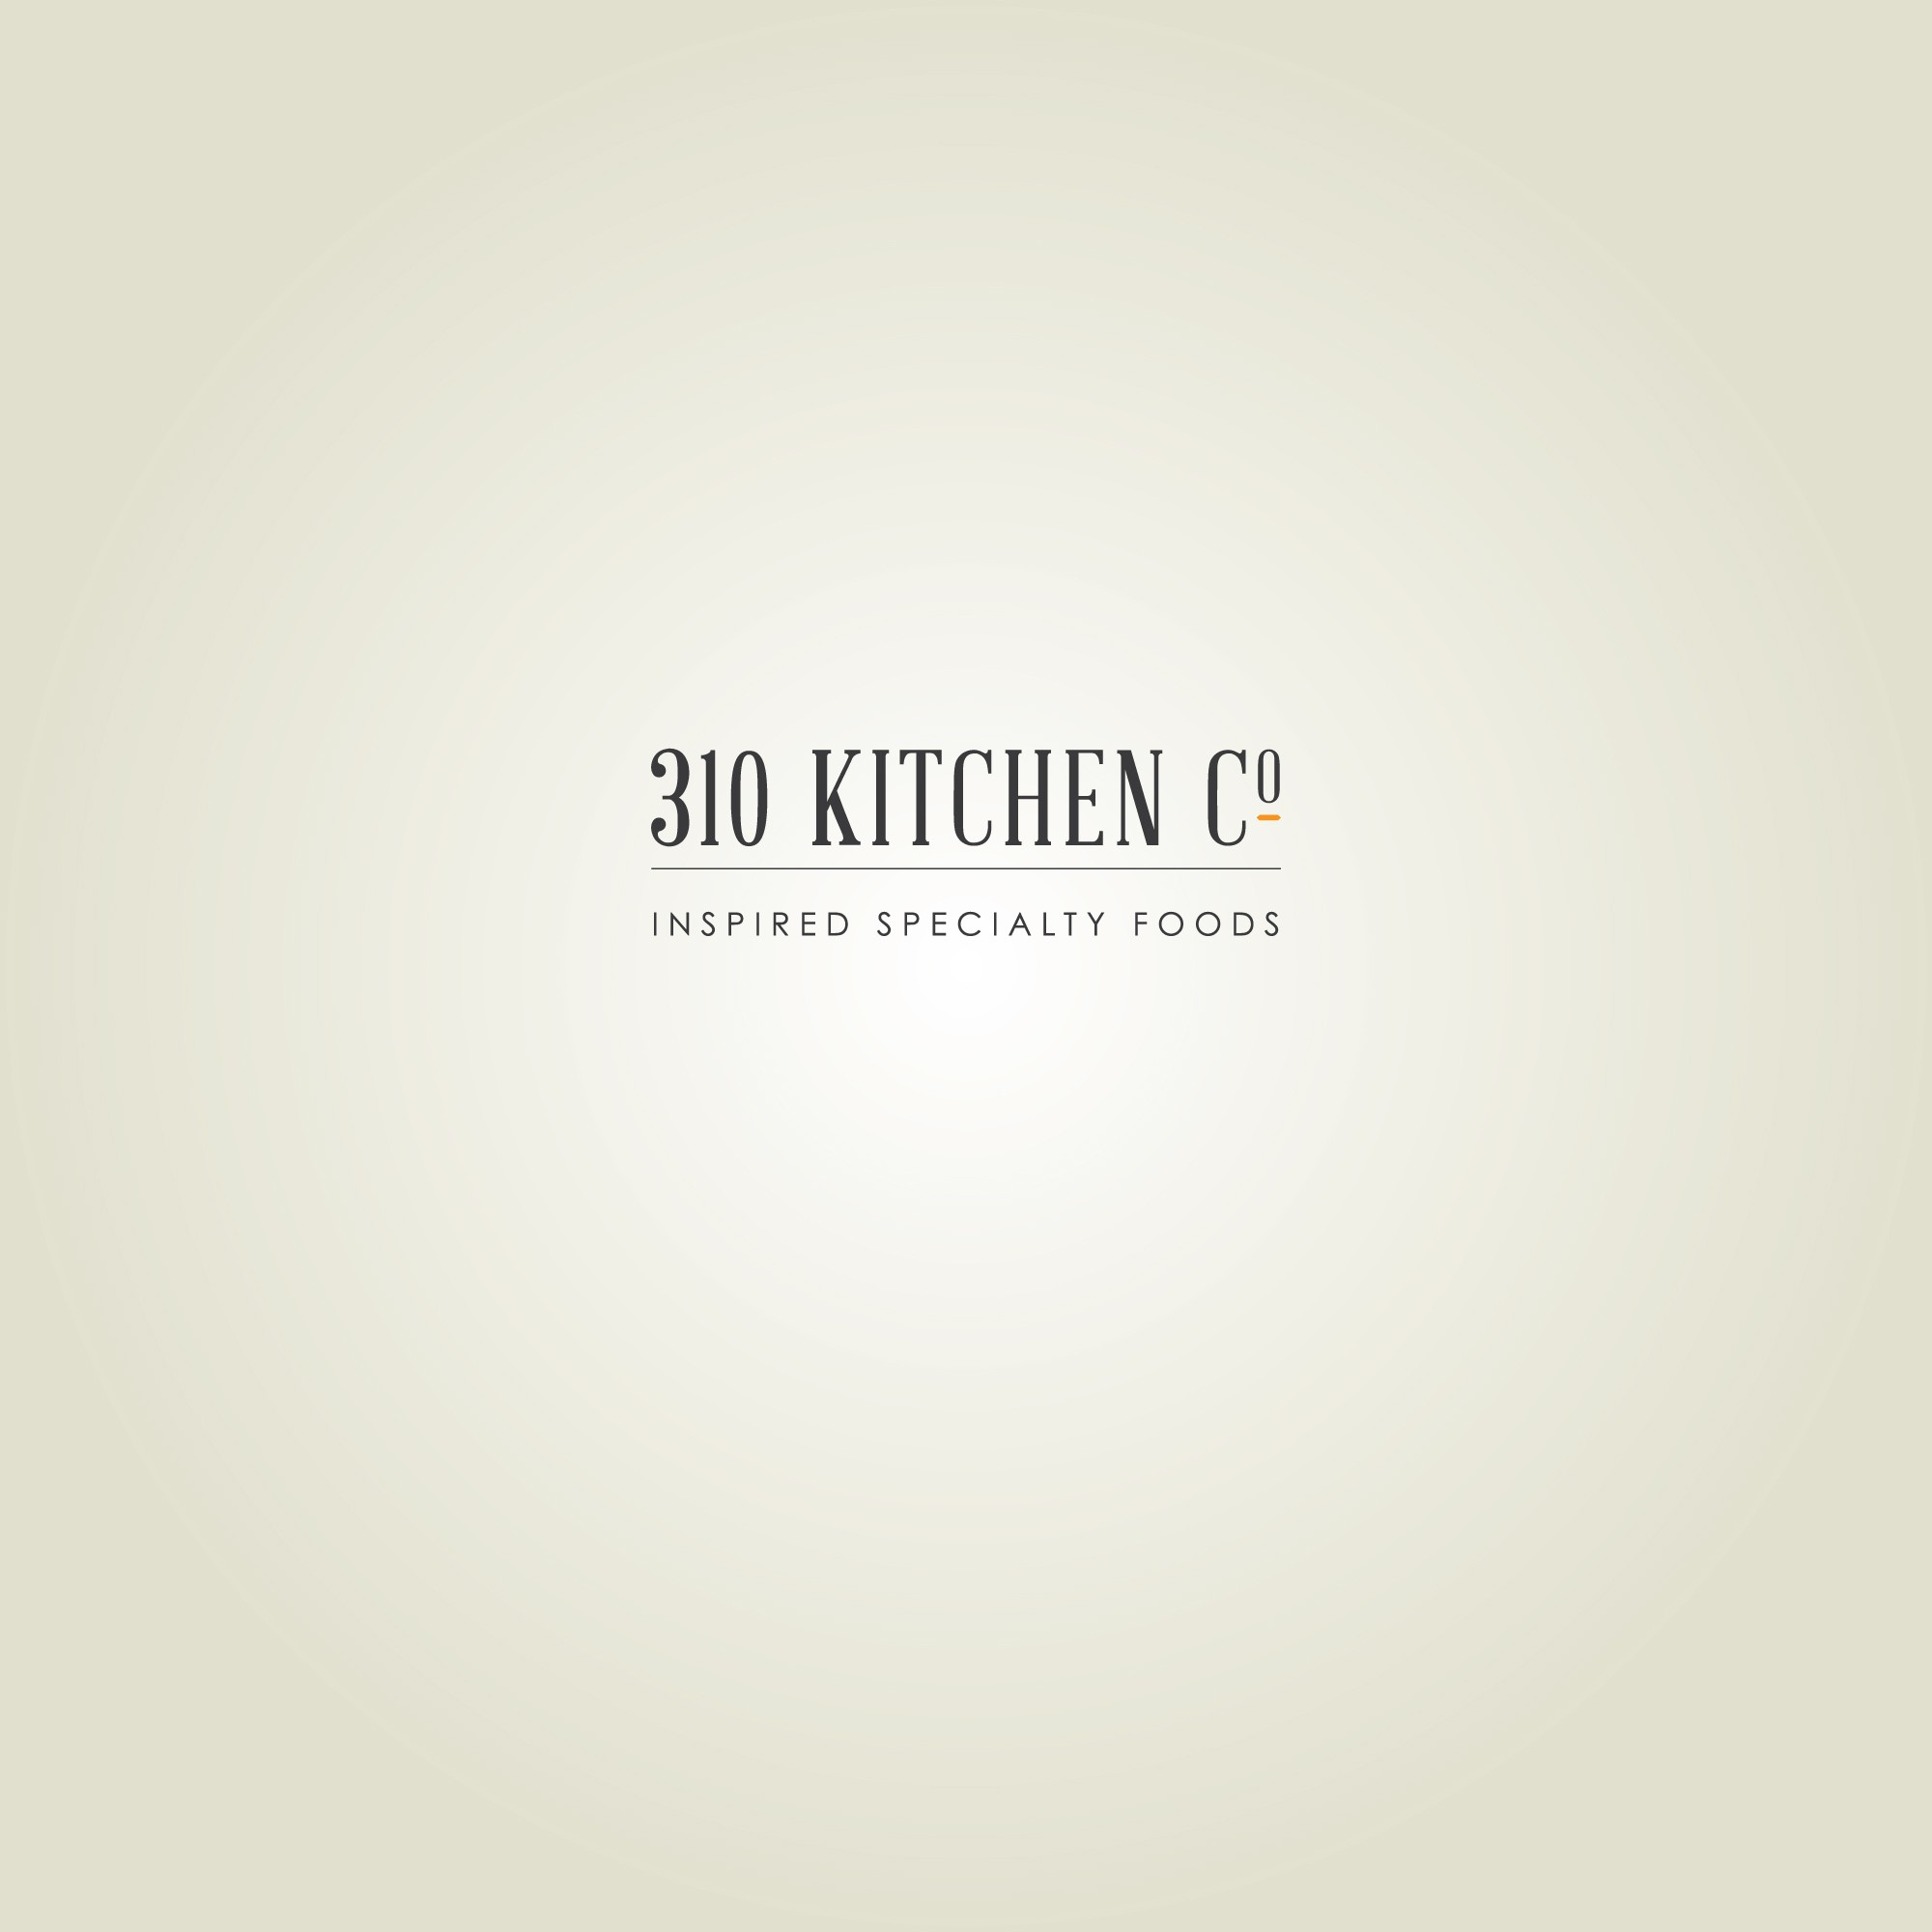 Help 310 kitchen co. with a new logo